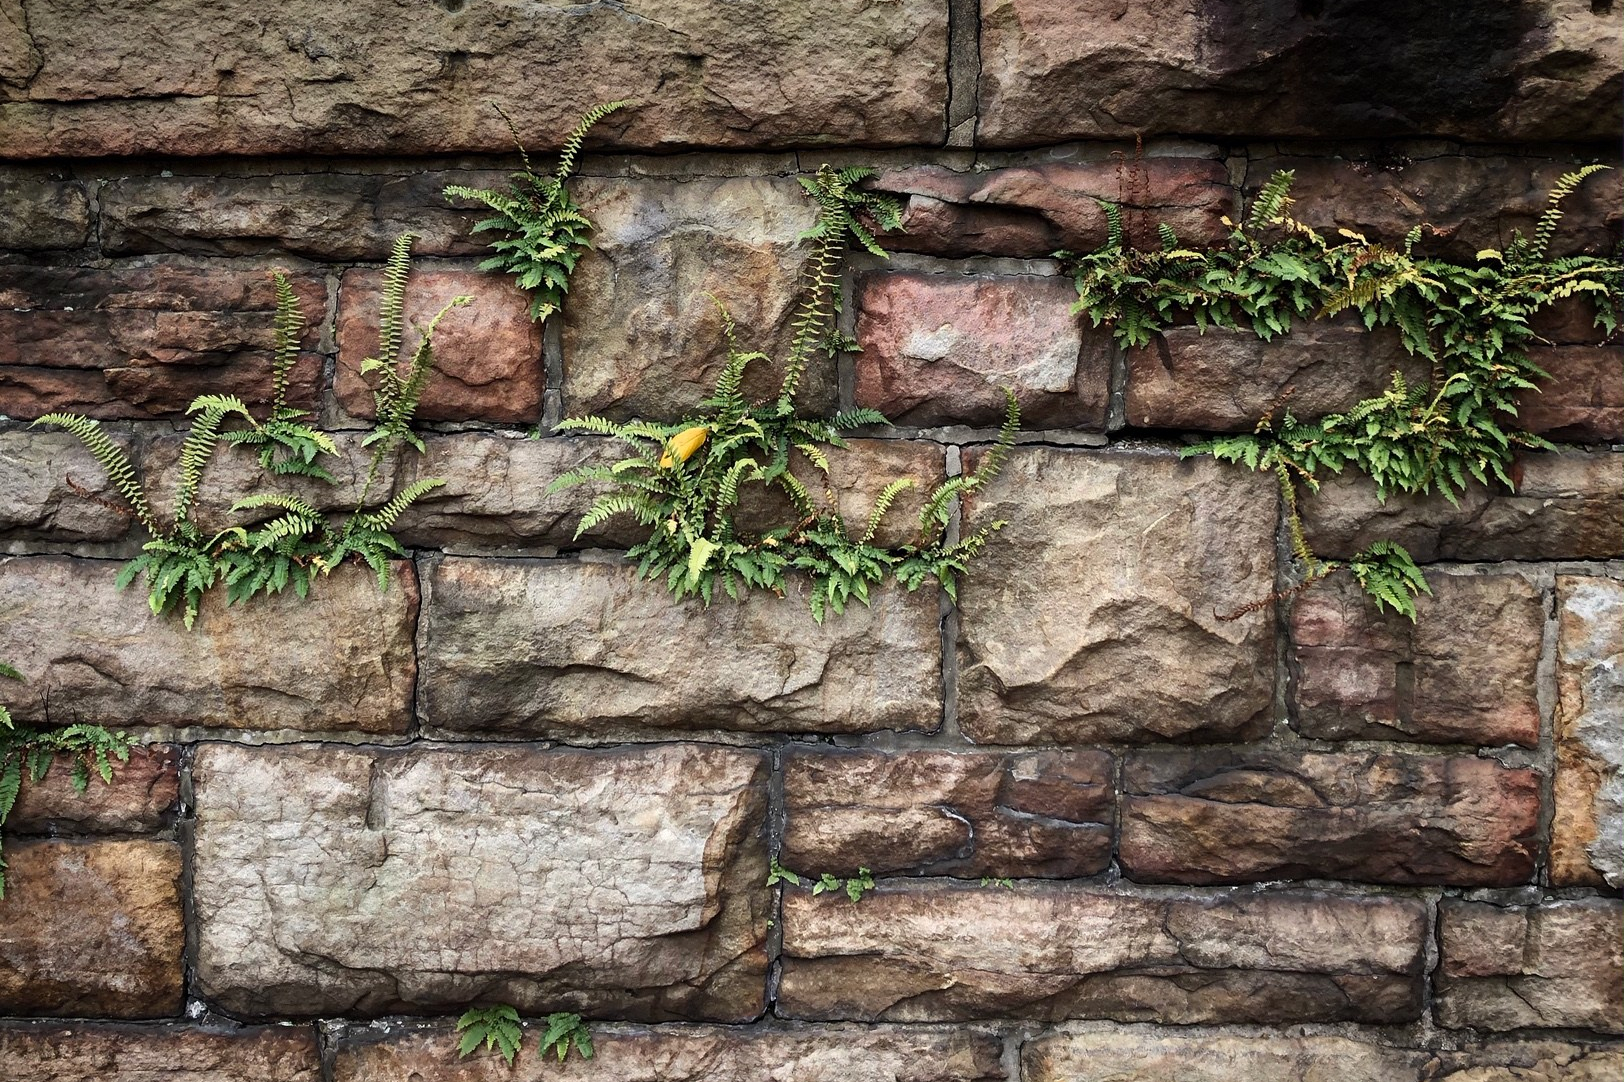 Ferns growing on a stone wall